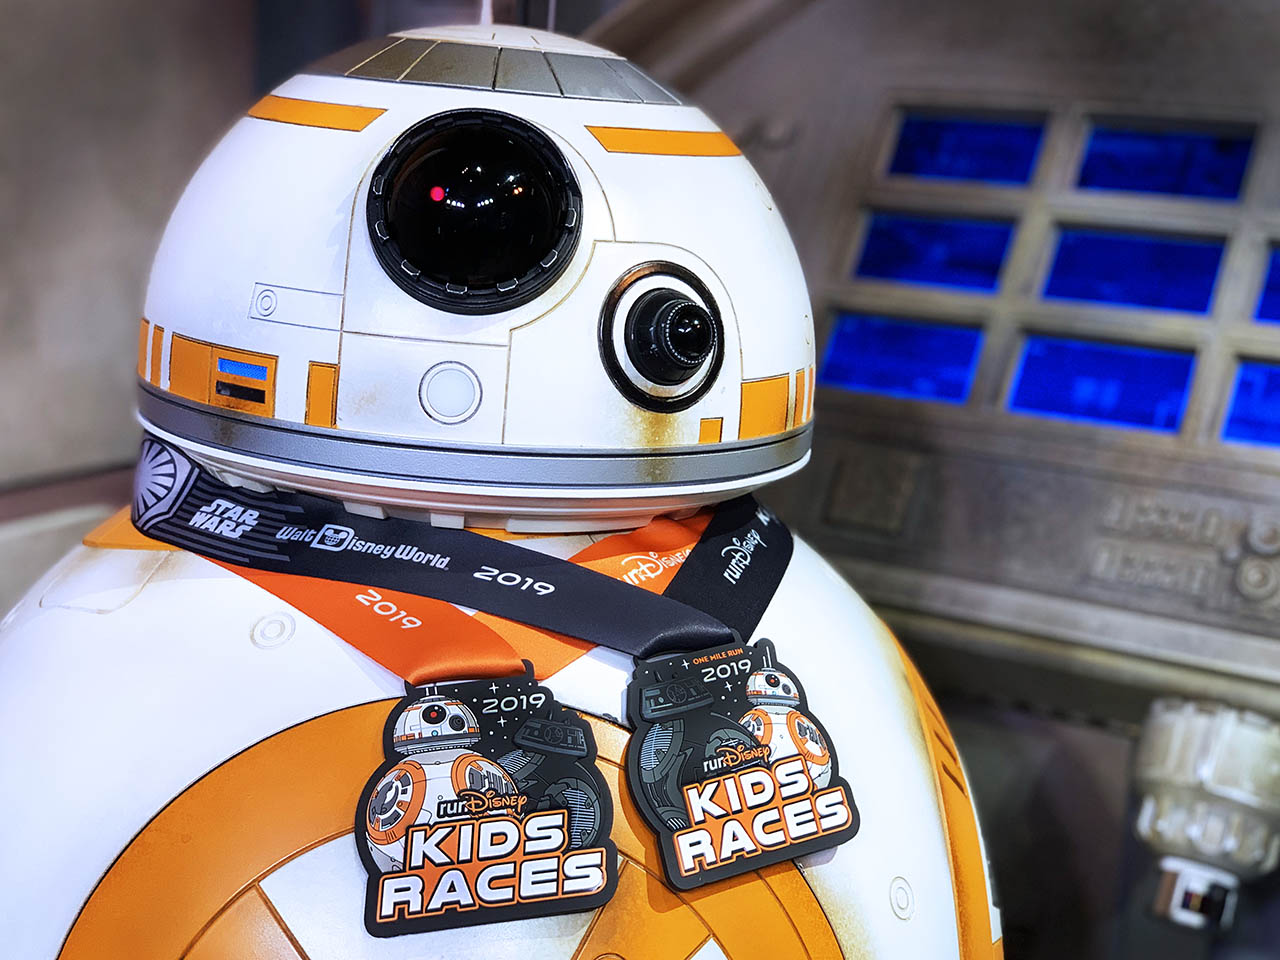 runDisney medals for the runDisney Kids Races | BB-8 and BB-9E